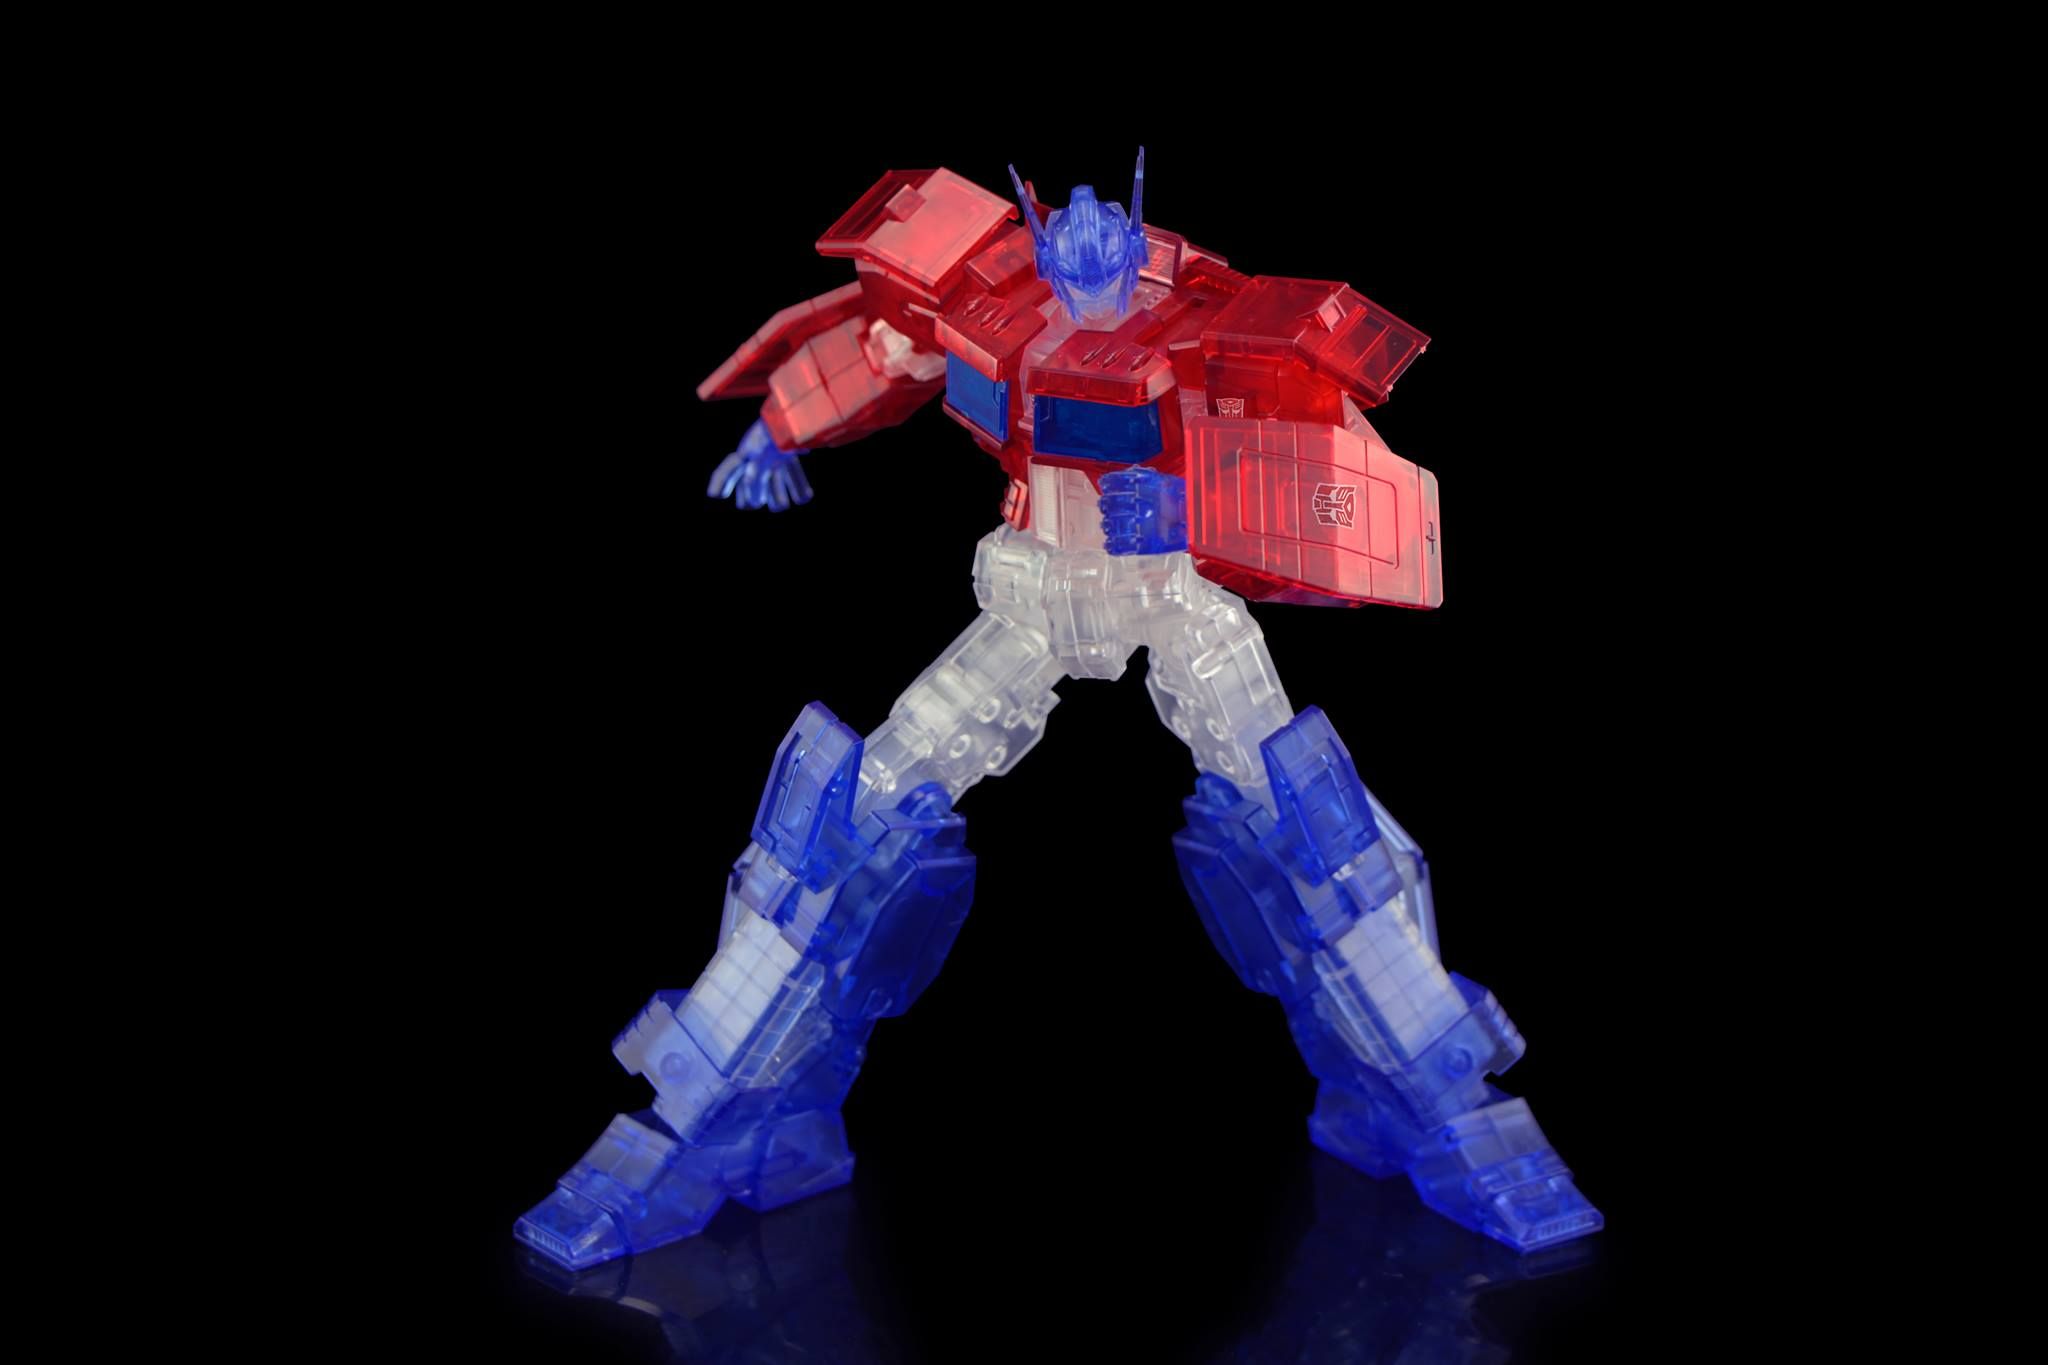 Flame Toys - Transformers - Furai Model Kit 03 - Optimus Prime IDW (Clear Ver.)